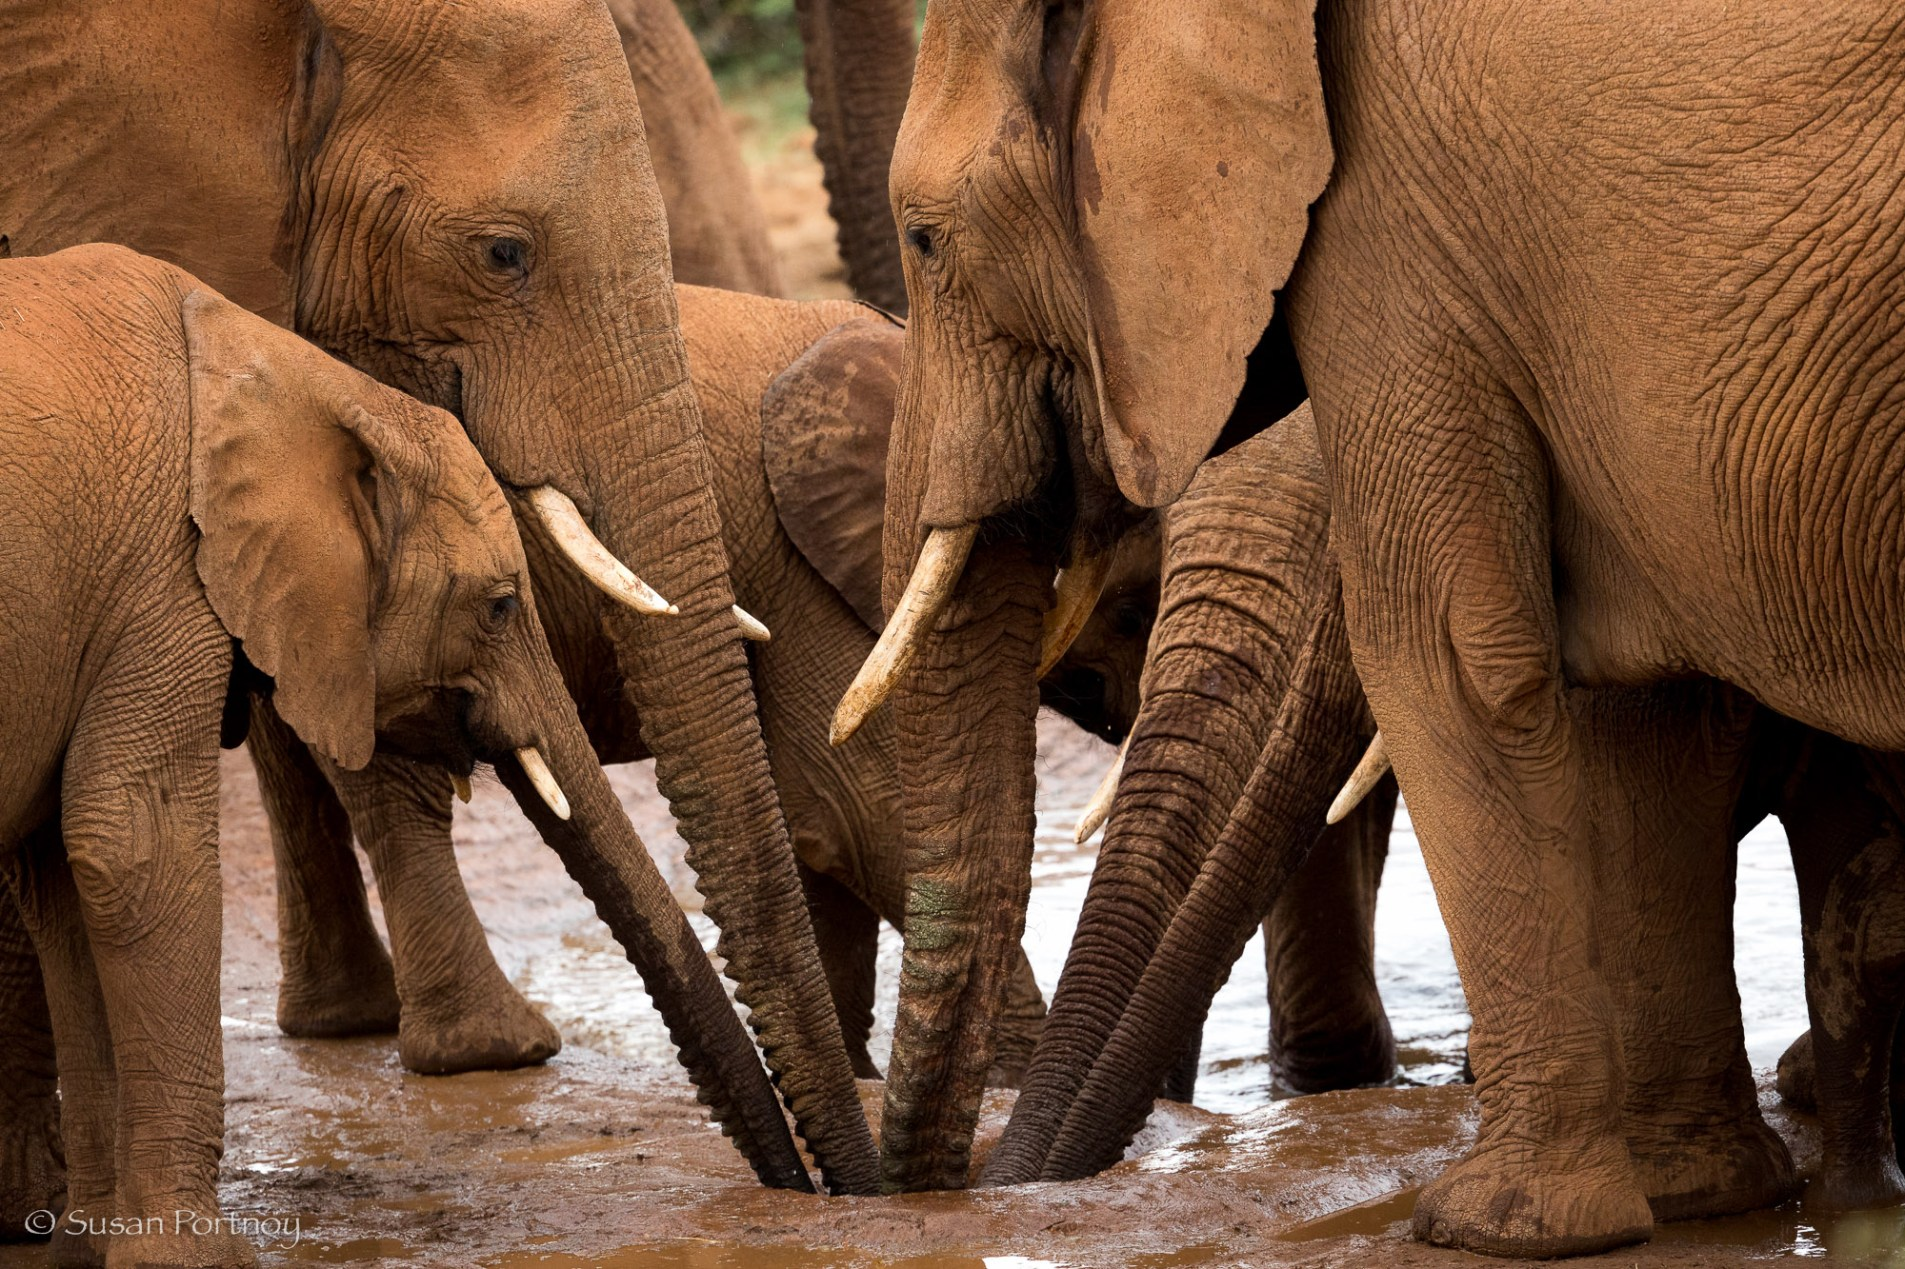 Elephants drinking from the watering hole at Molori Safari Lodge in South Africa